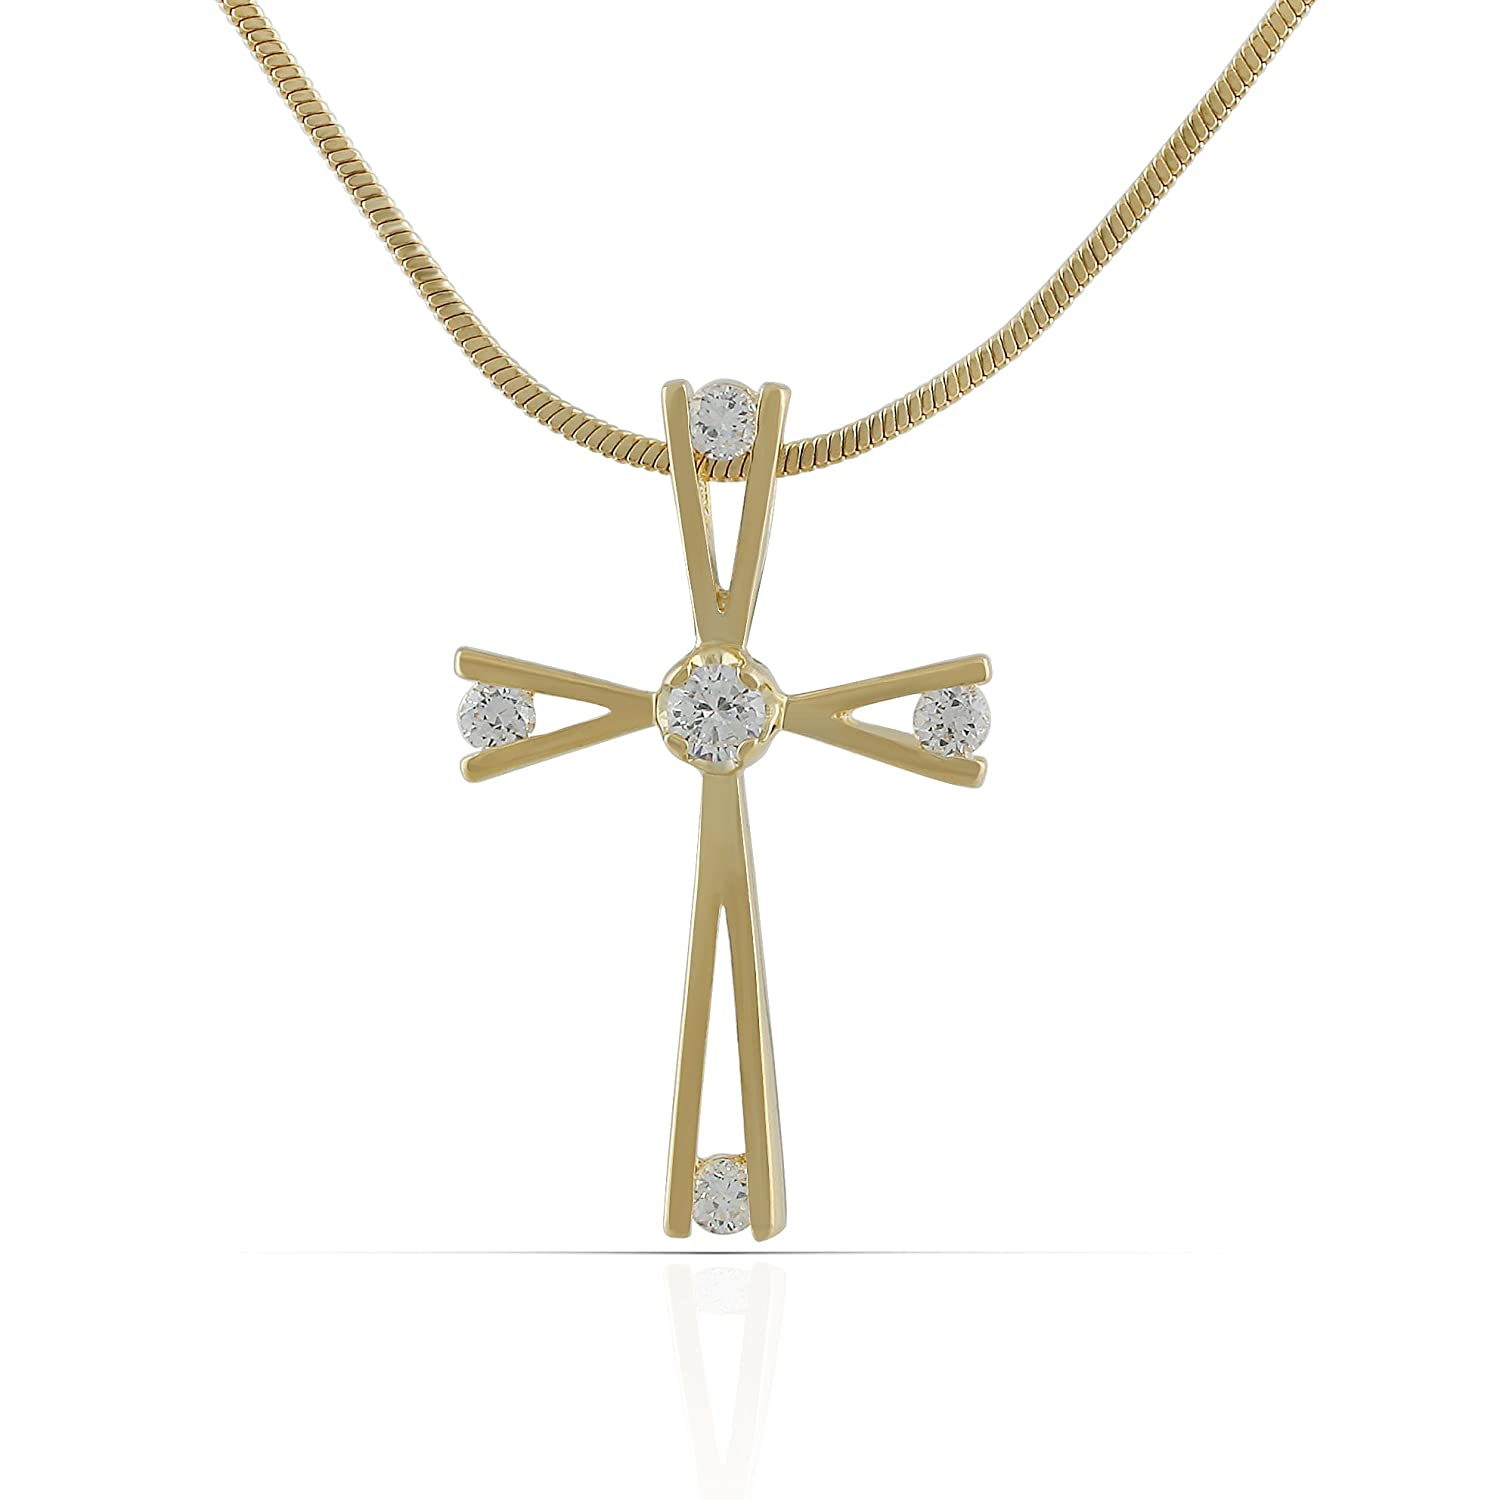 18 or 20 inch Rope Rembrandt Charms Two-Tone Sterling Silver Large Plain Cross Charm on a Sterling Silver 16 Box or Curb Chain Necklace